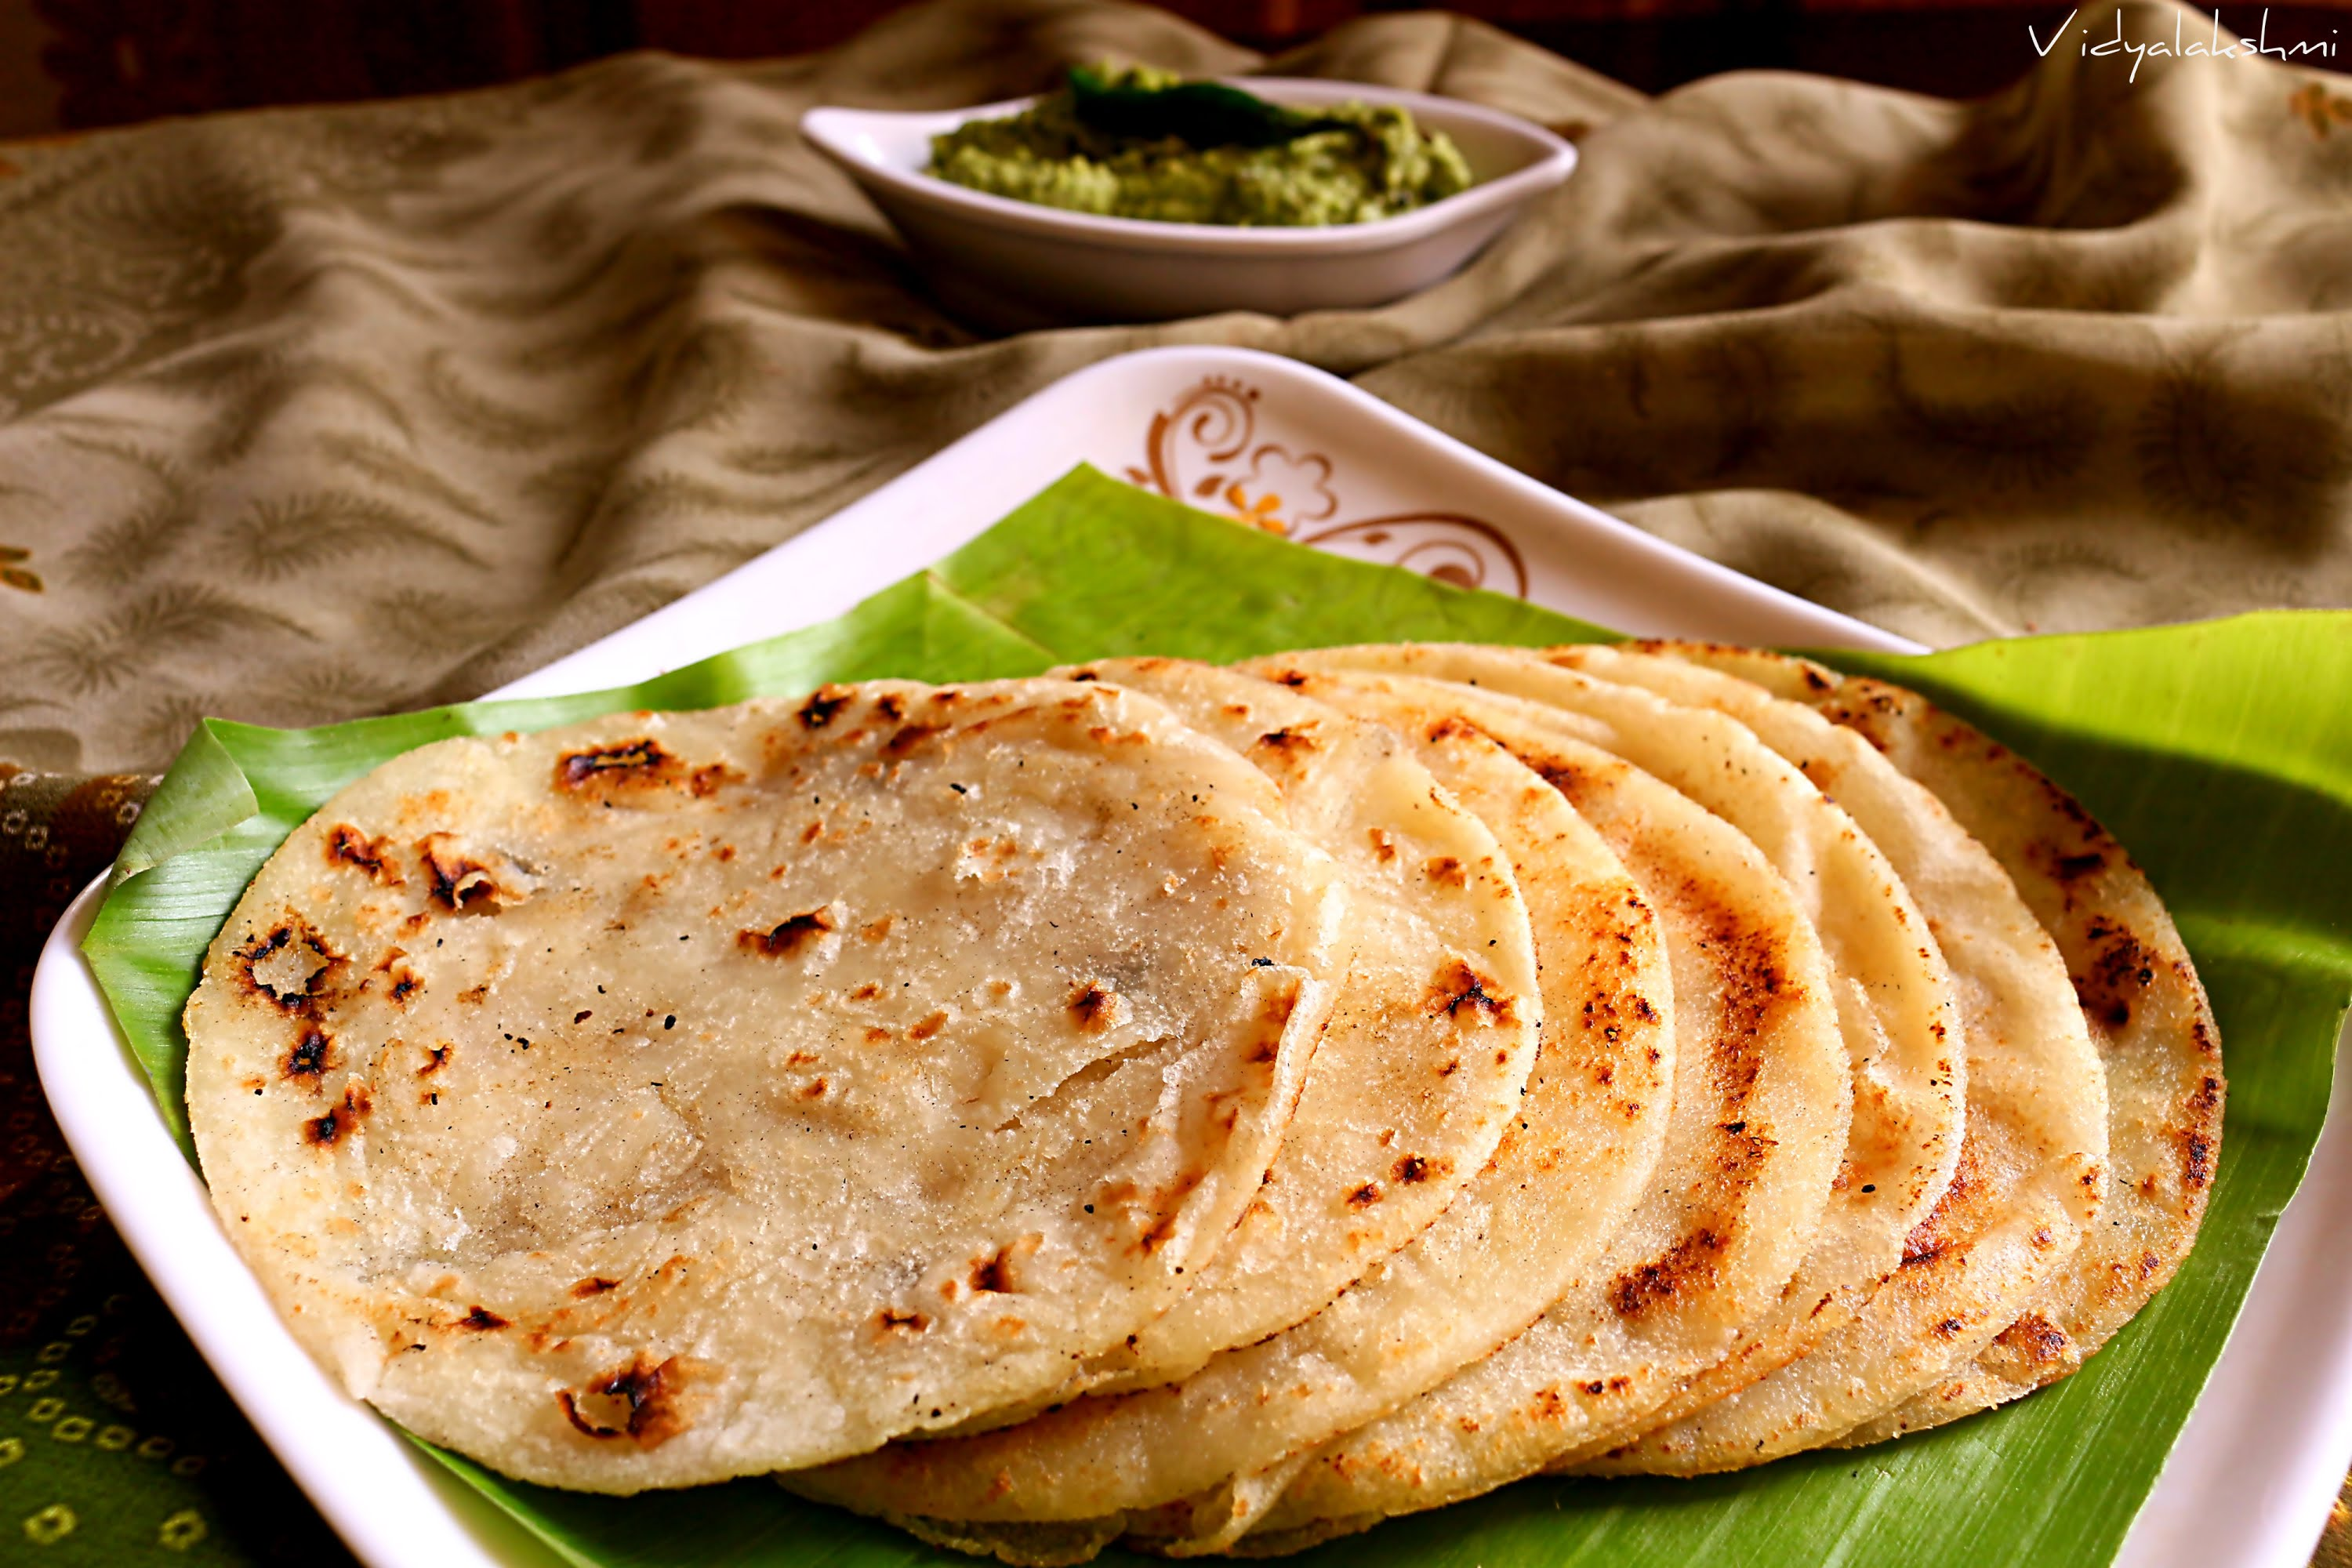 Images of Roti | 3000x2000